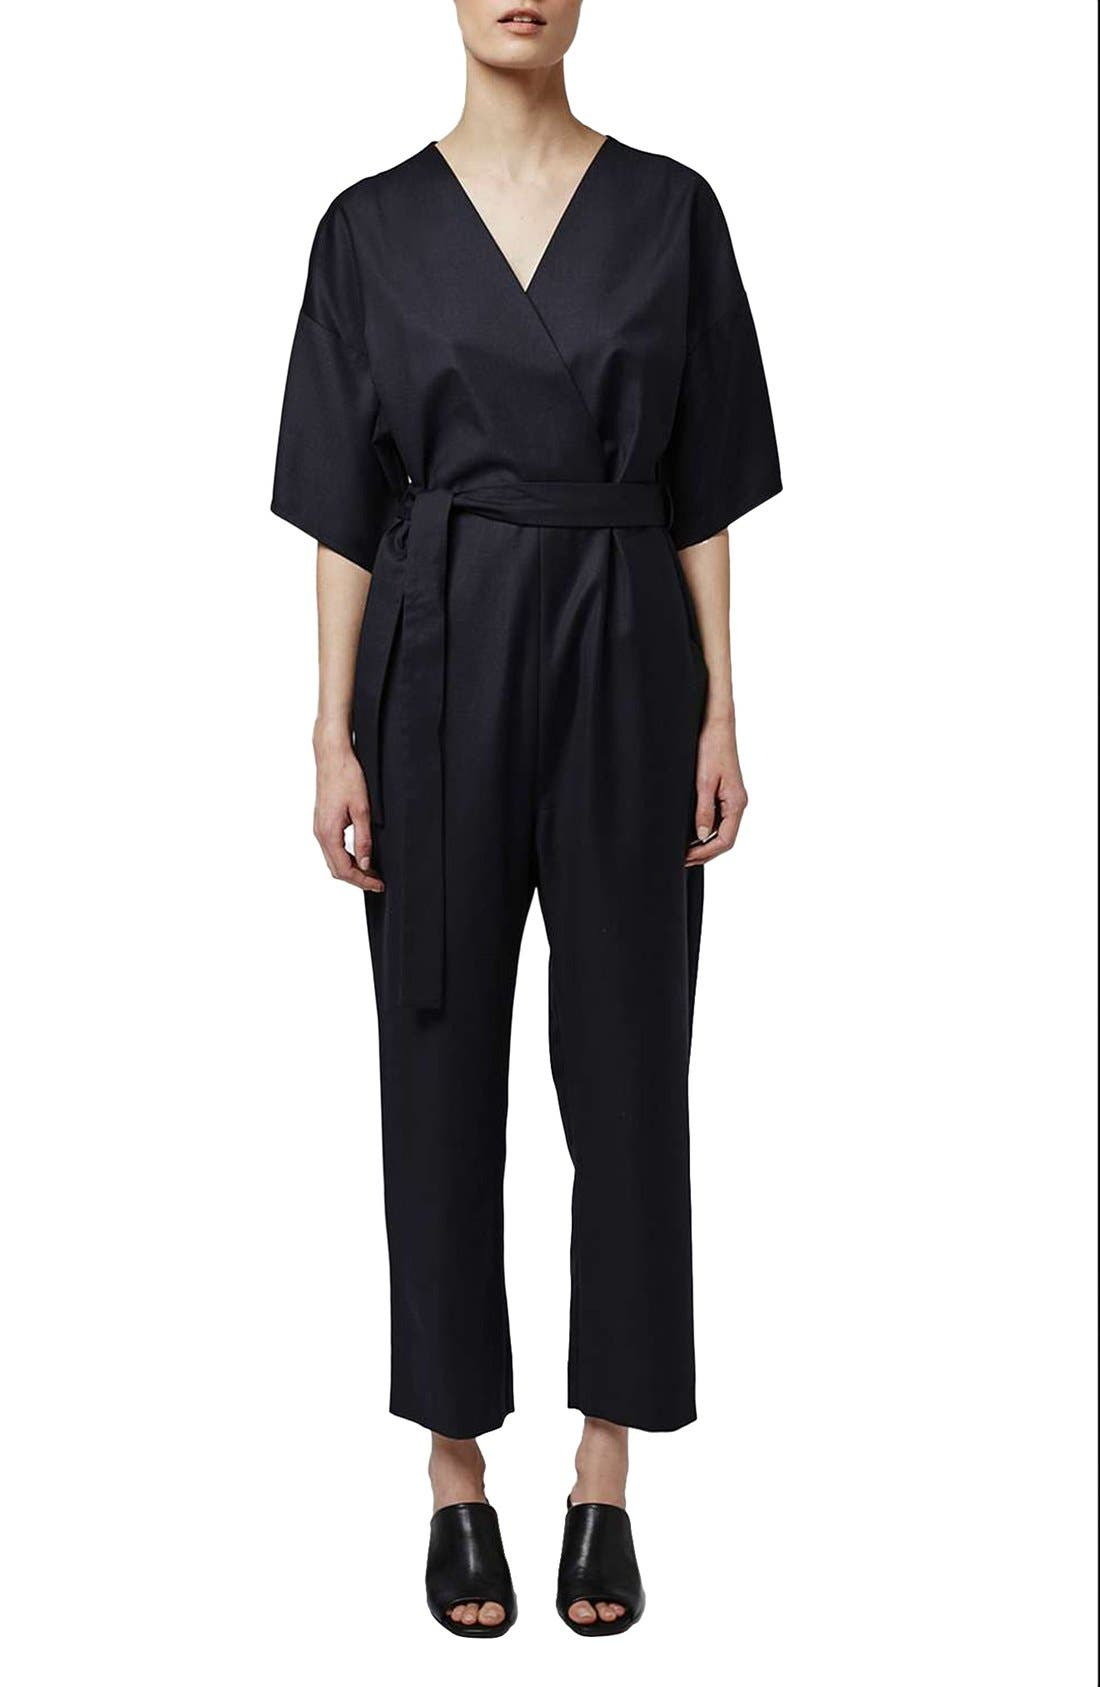 Alternate Image 1 Selected - Topshop Boutique Wool Kimono Wrap Jumpsuit